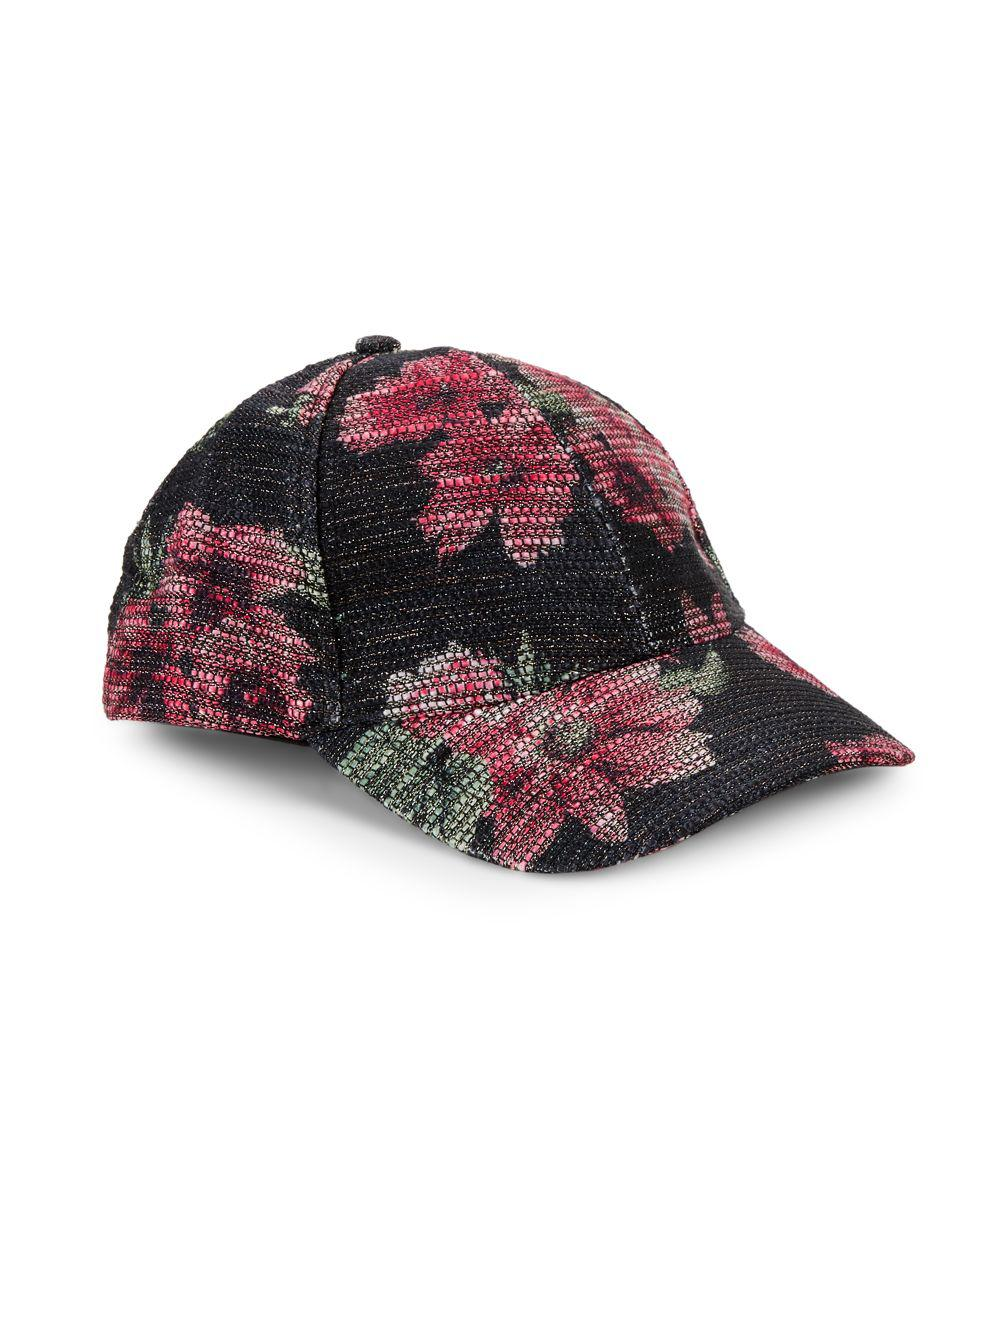 59c70bf86eb Collection 18 Sparkle Floral Baseball Cap in Black for Men - Lyst